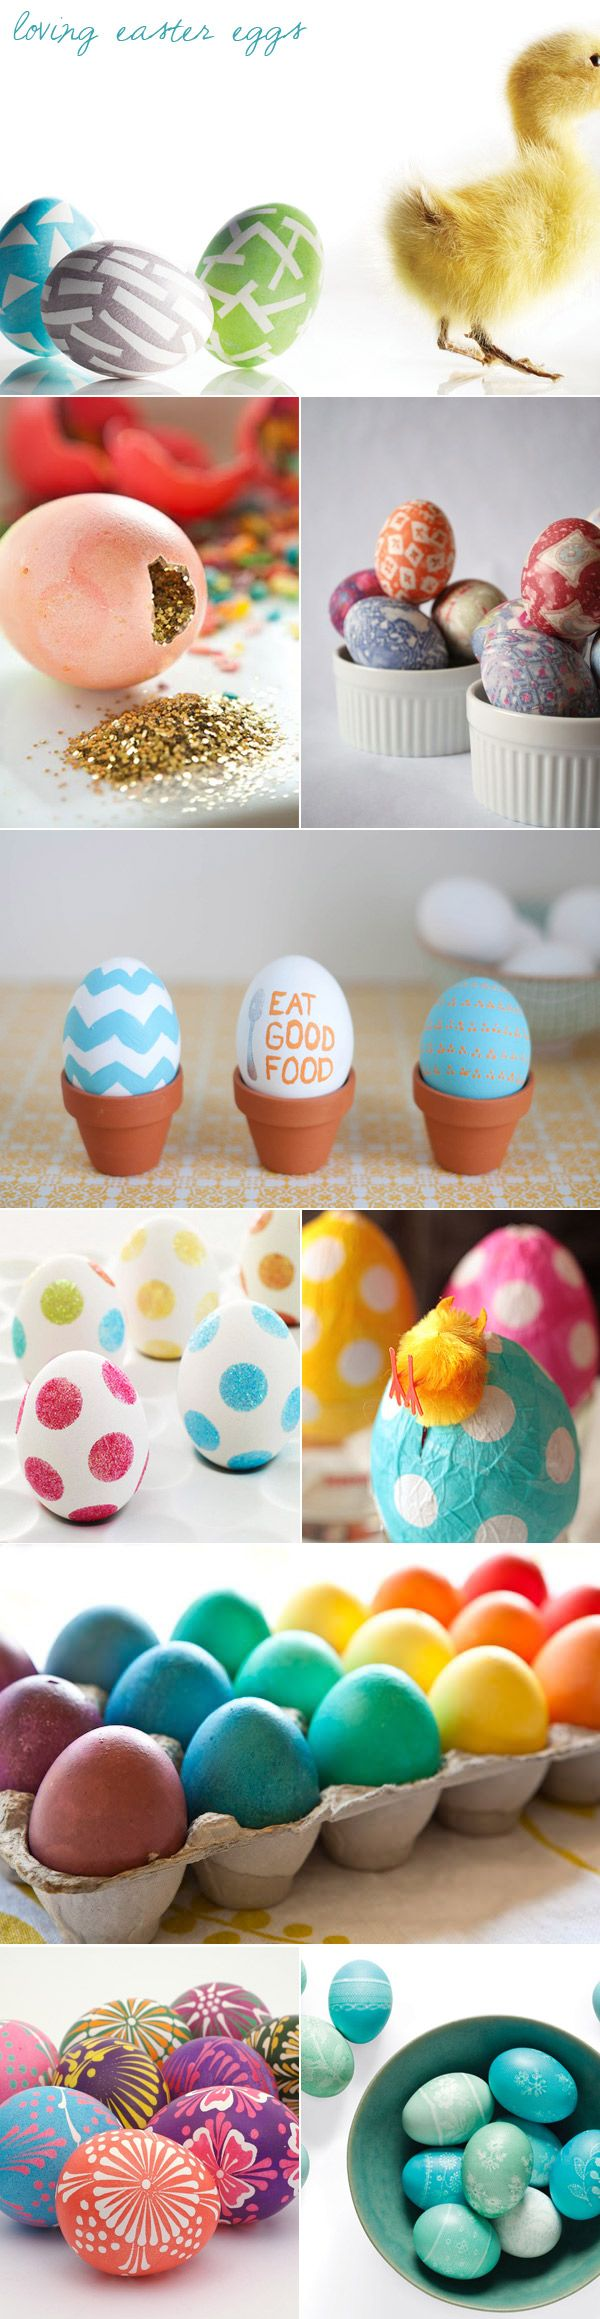 easter-egg-decorating-ideas